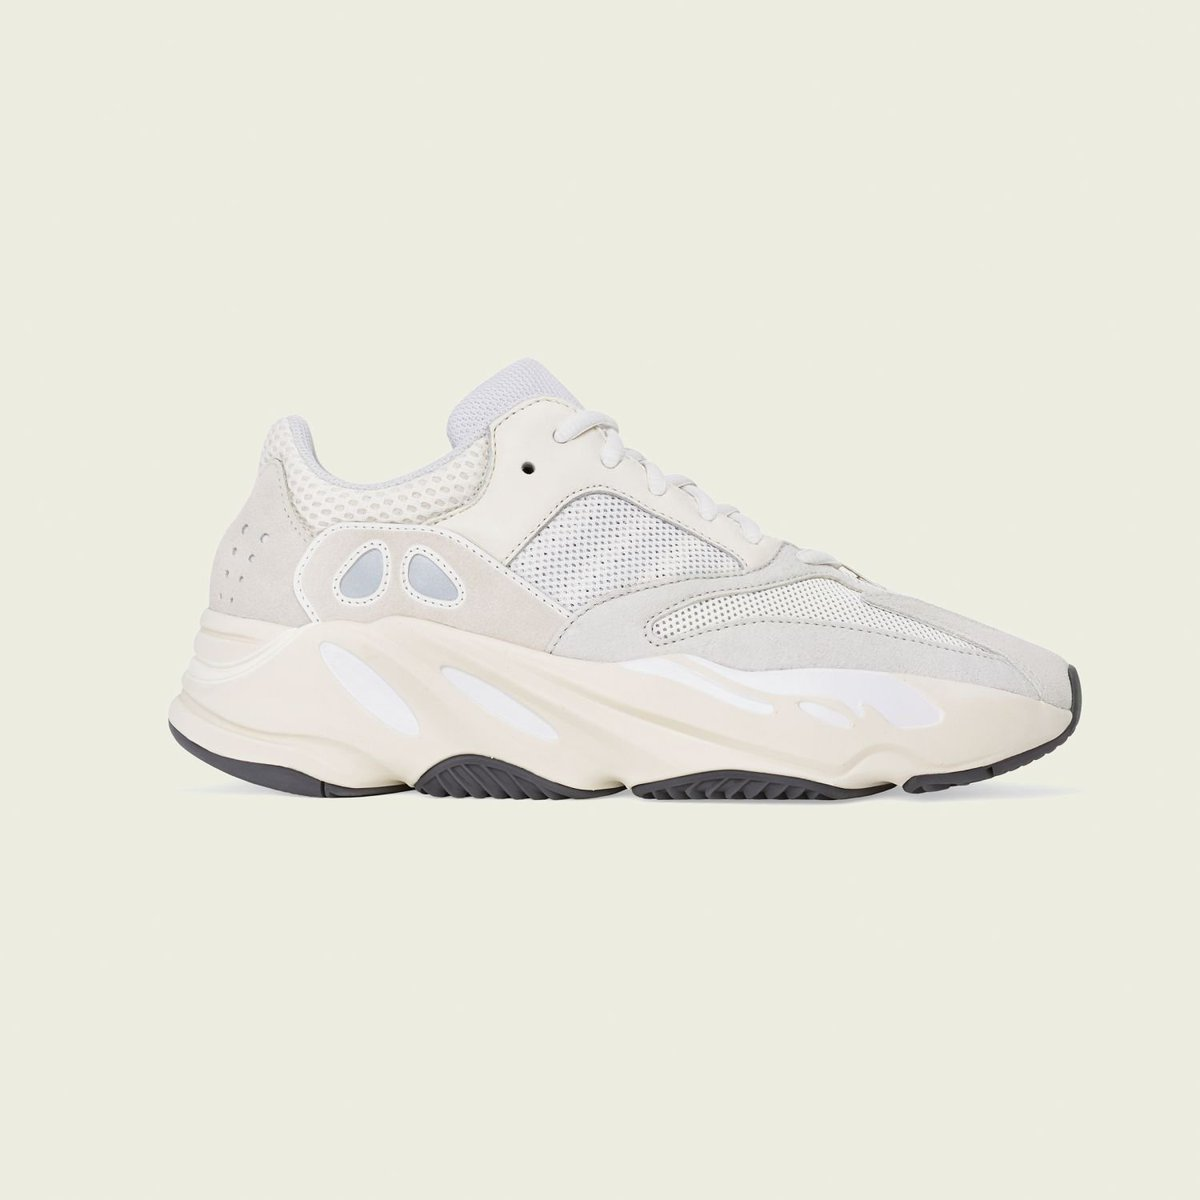 6d7f833227b YEEZY BOOST 700 ANALOG RELEASING APRIL 27pic.twitter.com UoV0cPU3tD